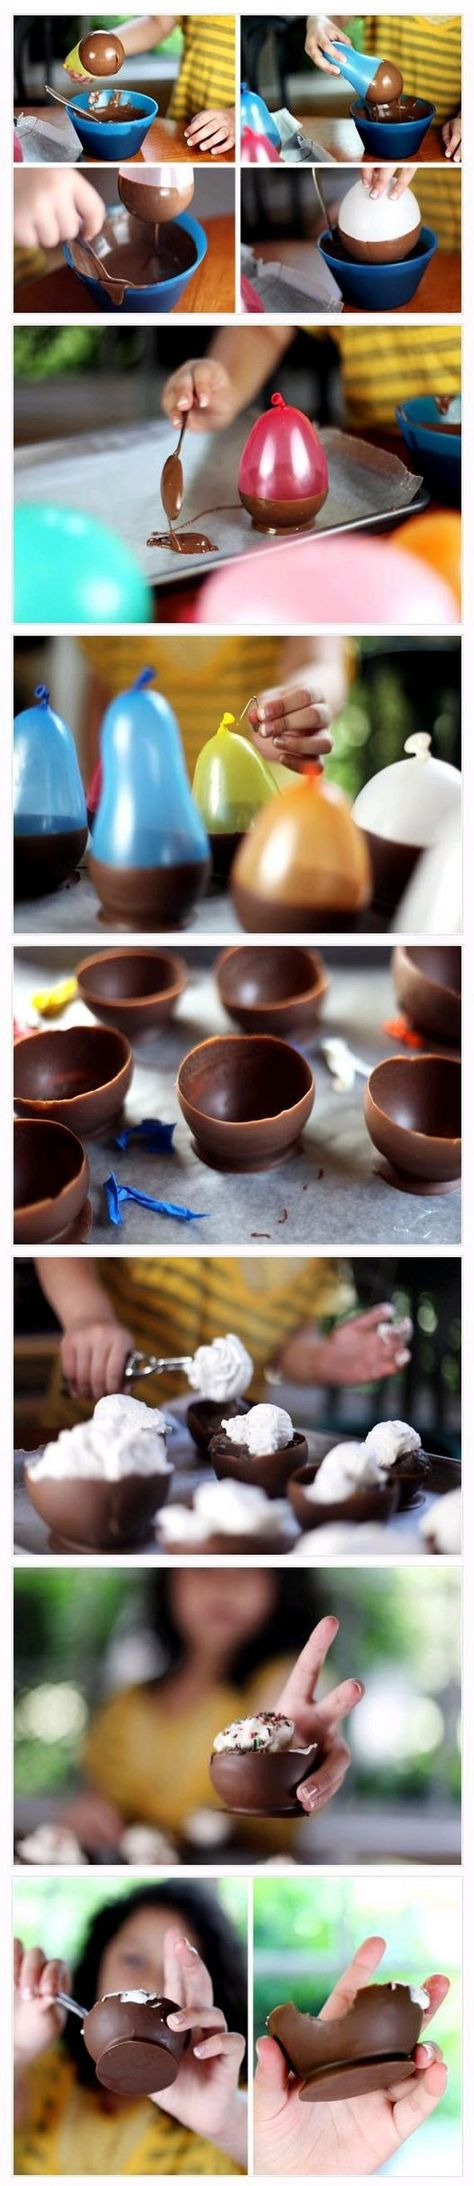 Ballon DIY chocolate bowls or cups to serve dessert with a edible container